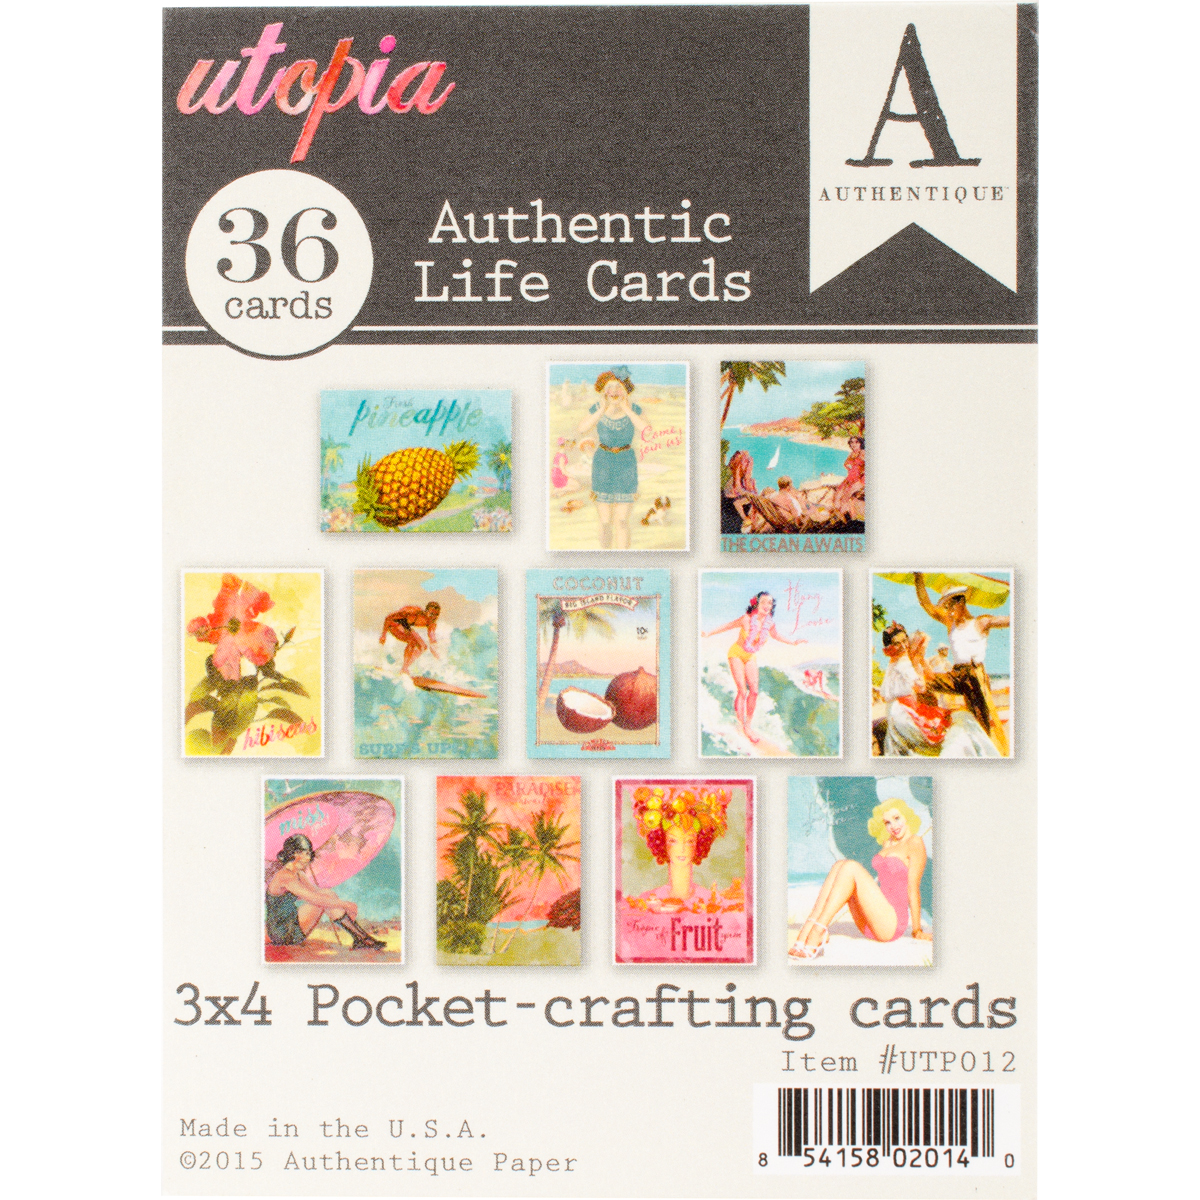 "Utopia Authentic Life Cards, Pocket Crafting & Journaling, 3"" x 4"" Cards"